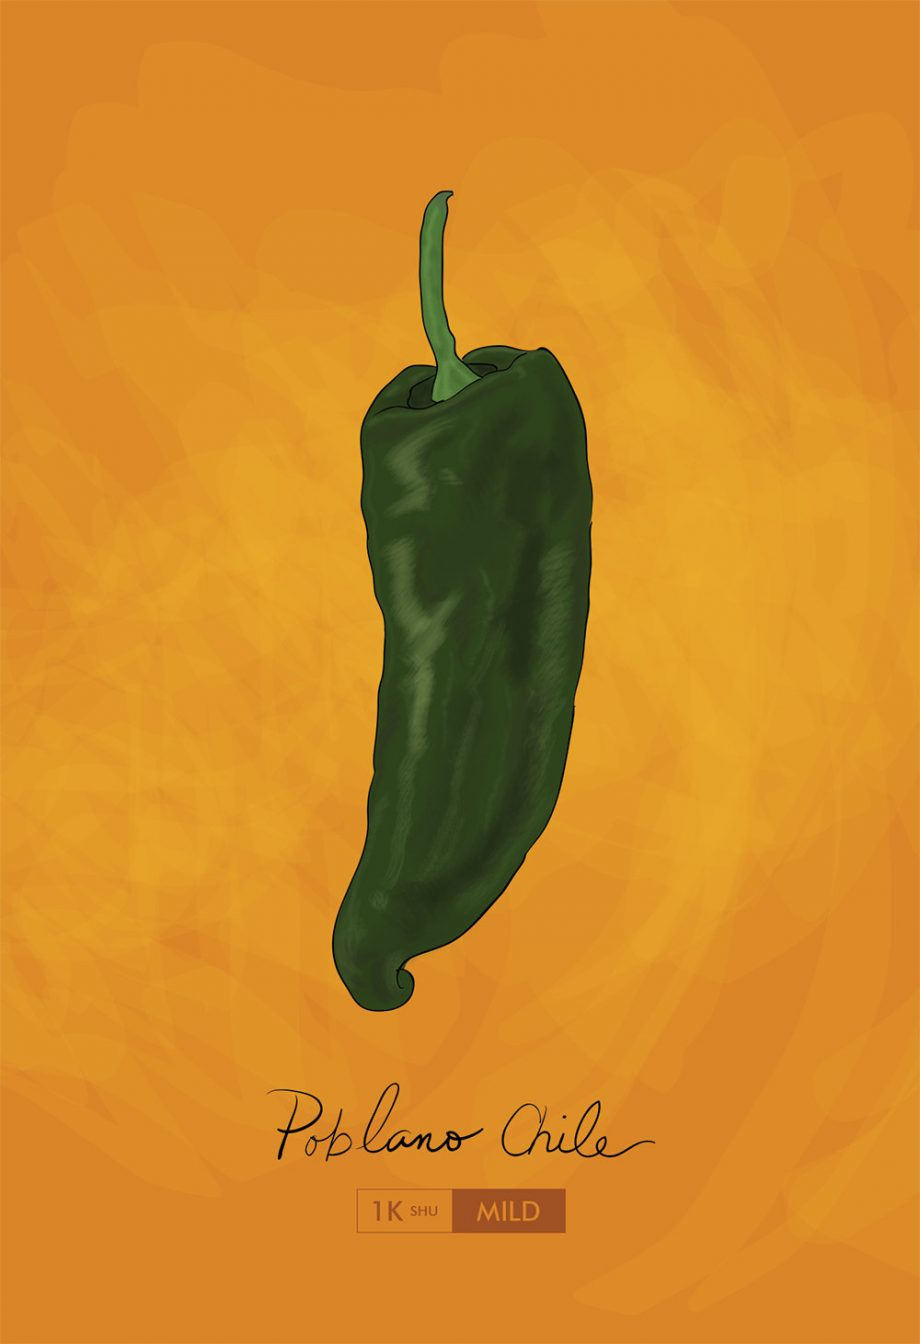 Poblano Chili Pepper Kitchen Print Giclee Original Art Large Print Poster on Satin and Cotton Canvas Mexican Home Decor